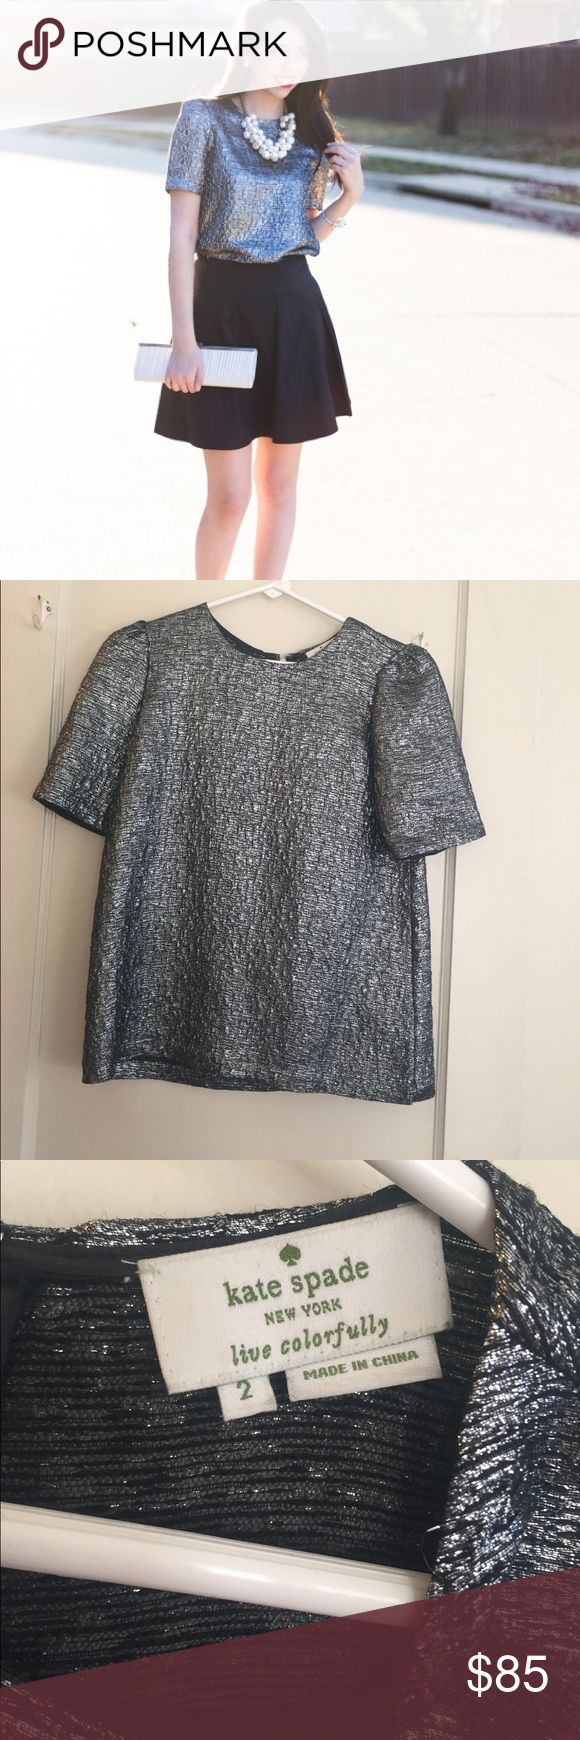 Kate Spade Haley top, size 2, silver blouse Adorable Kate spade Haley top, silver/metallic, size 2, worn once! kate spade Tops Blouses